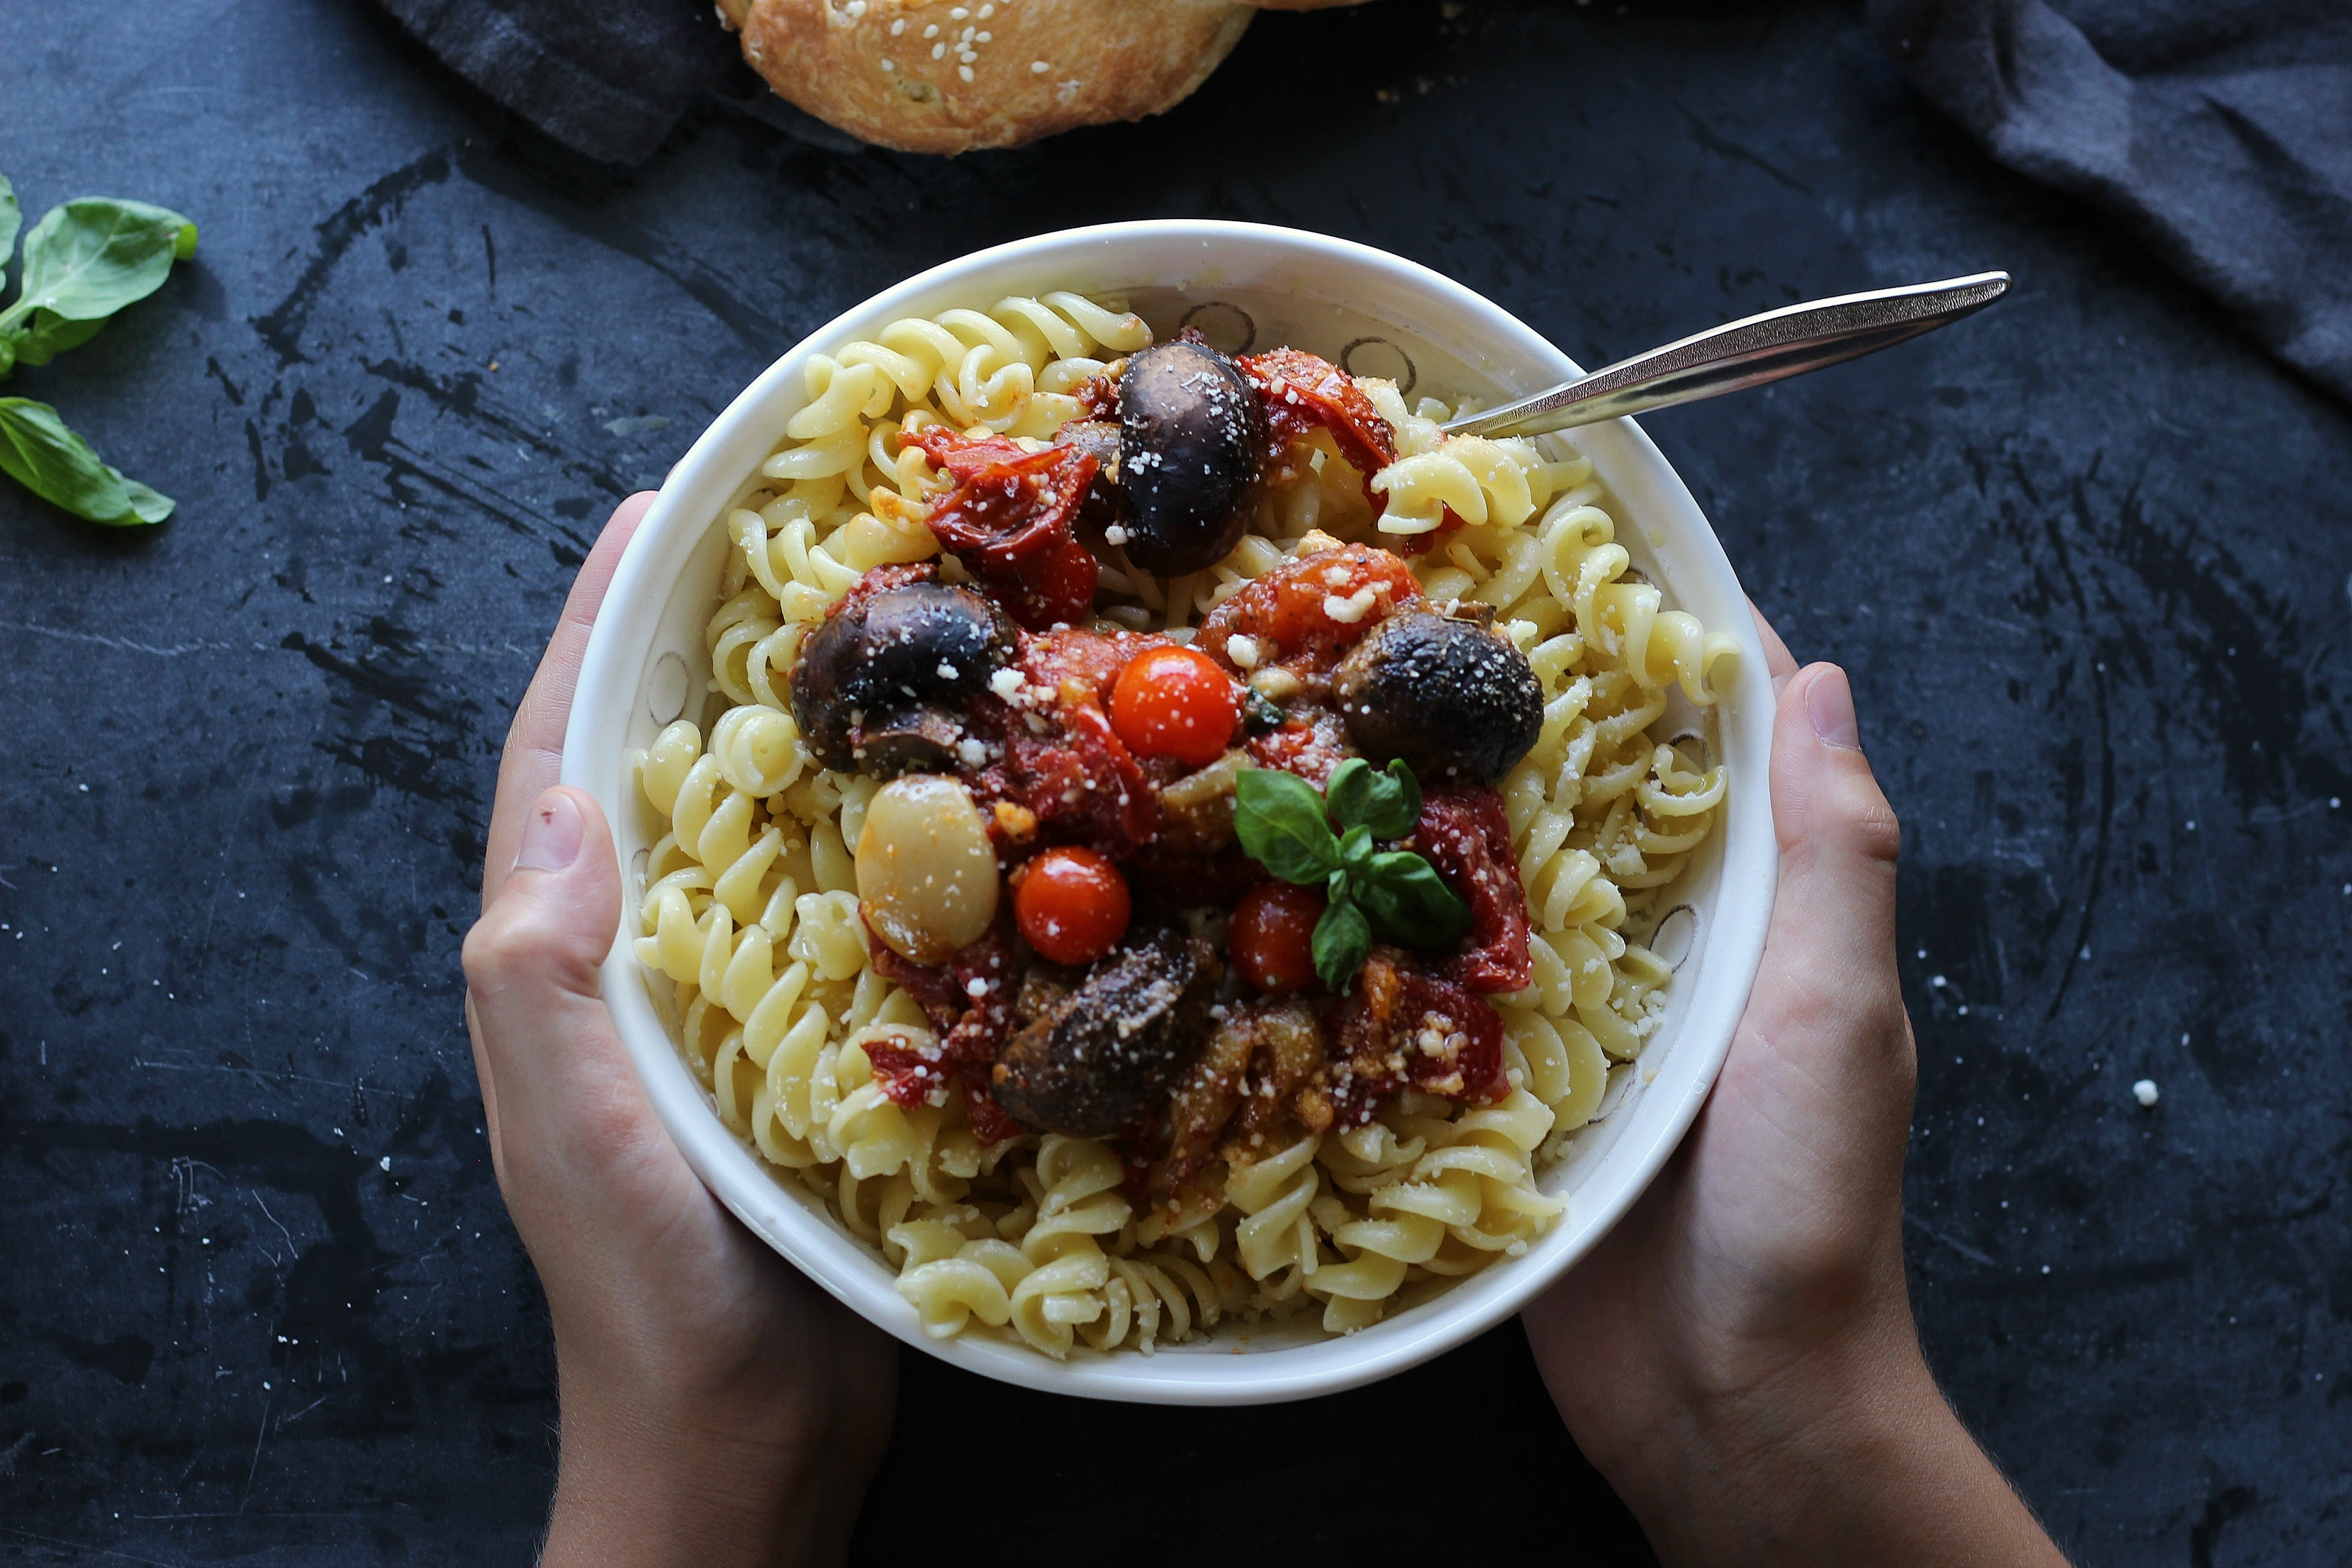 Add a whole lot of flavor to simple dishes with this easy #Paleo and #Glutenfree Roasted Tomato & Mushroom Garlicky Chunky Sauce   gardeninthekitchen.com